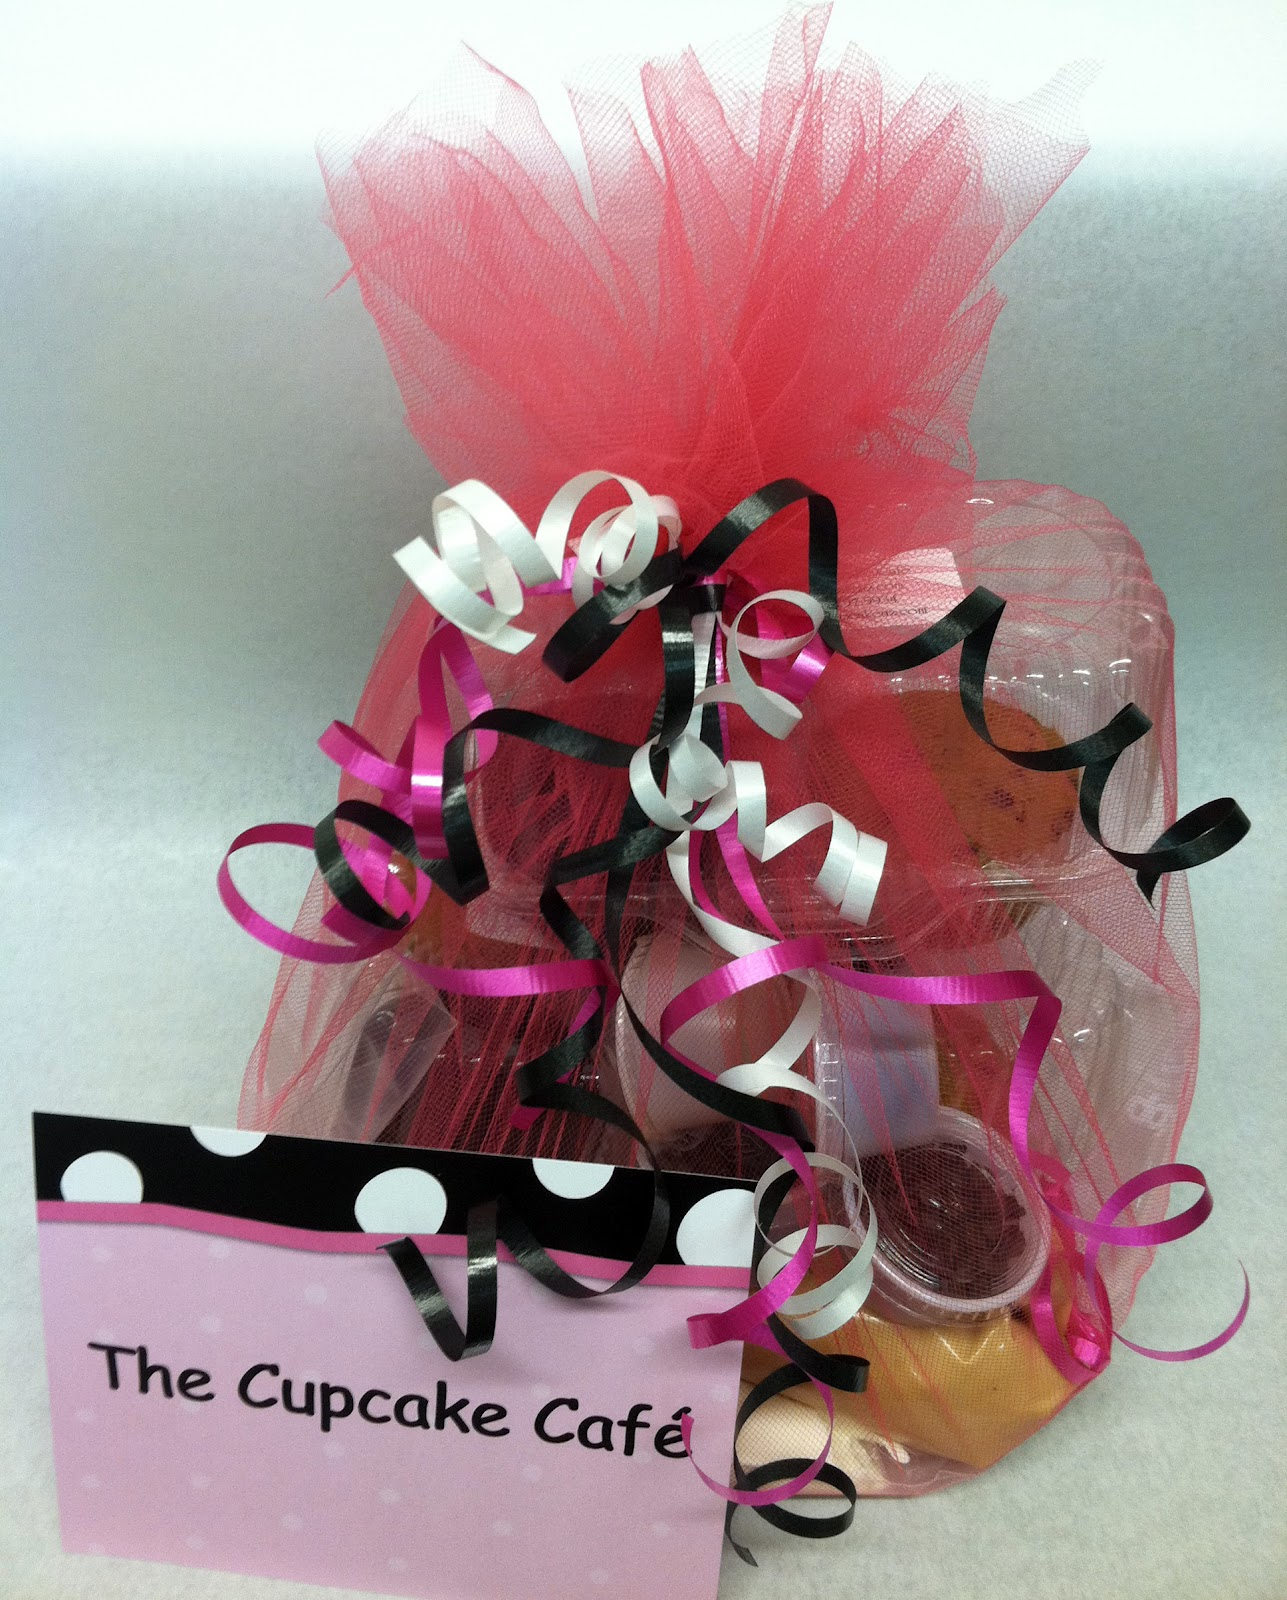 The Cupcake Cafe Gallery